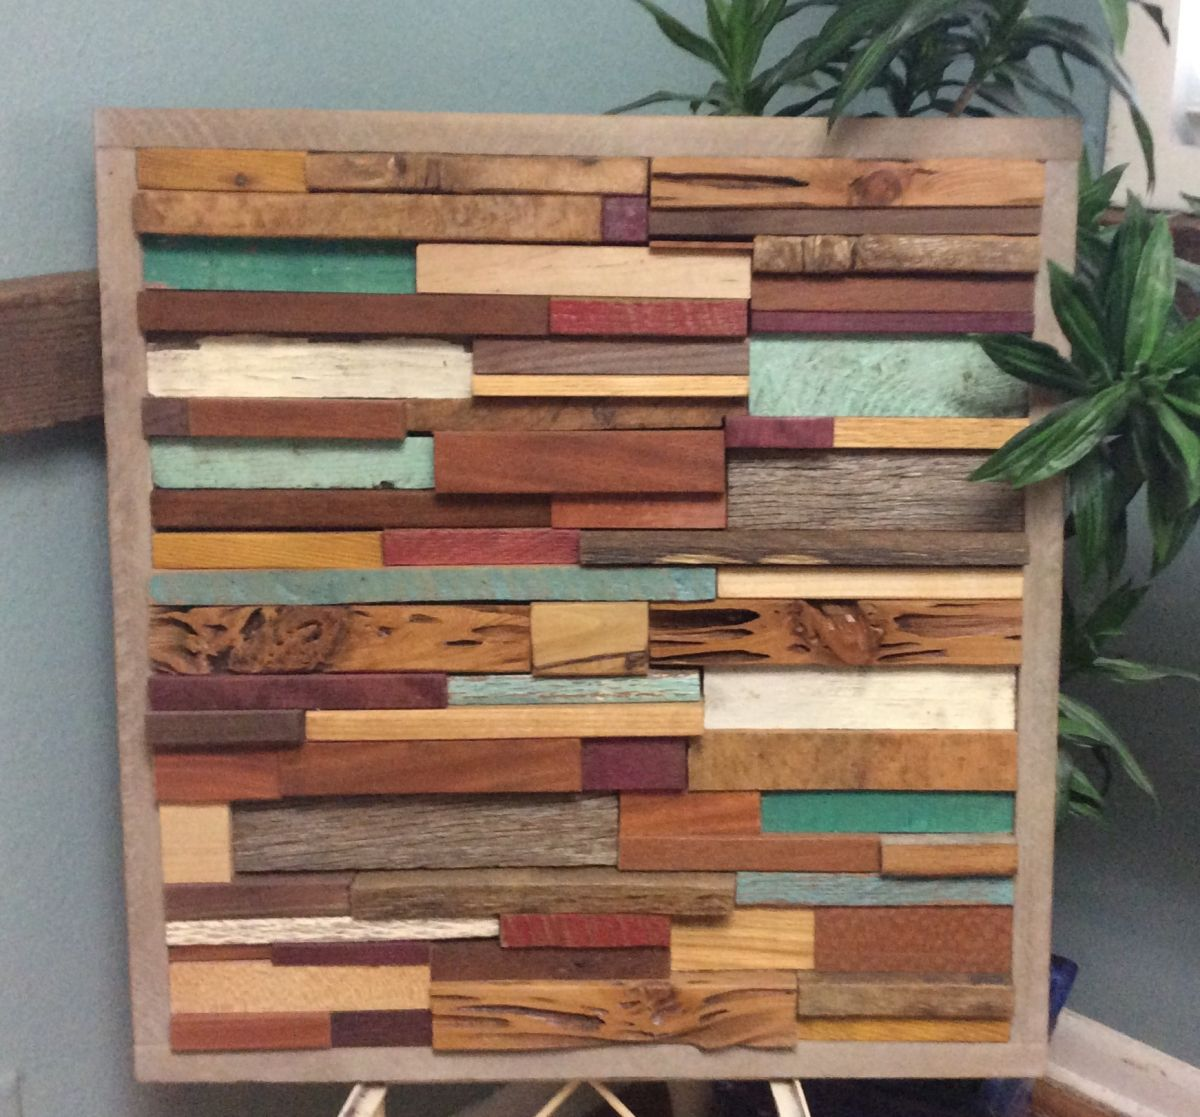 Inject Warmth Into Your Home With Reclaimed Wood Wall: Repurposed Wall Art